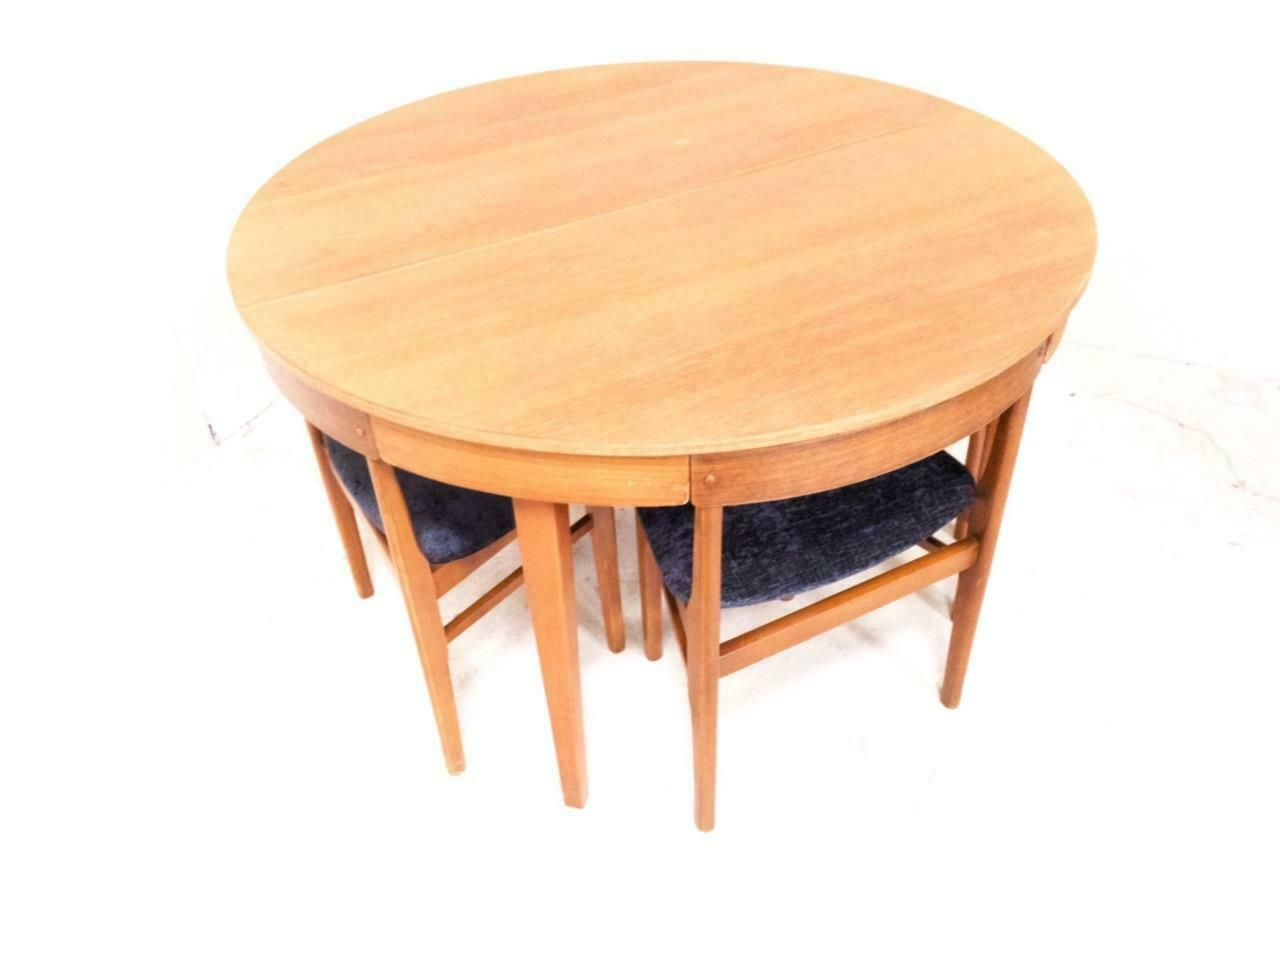 Mcintosh Dining Table Chairs Roundette 1970s Heals Hans